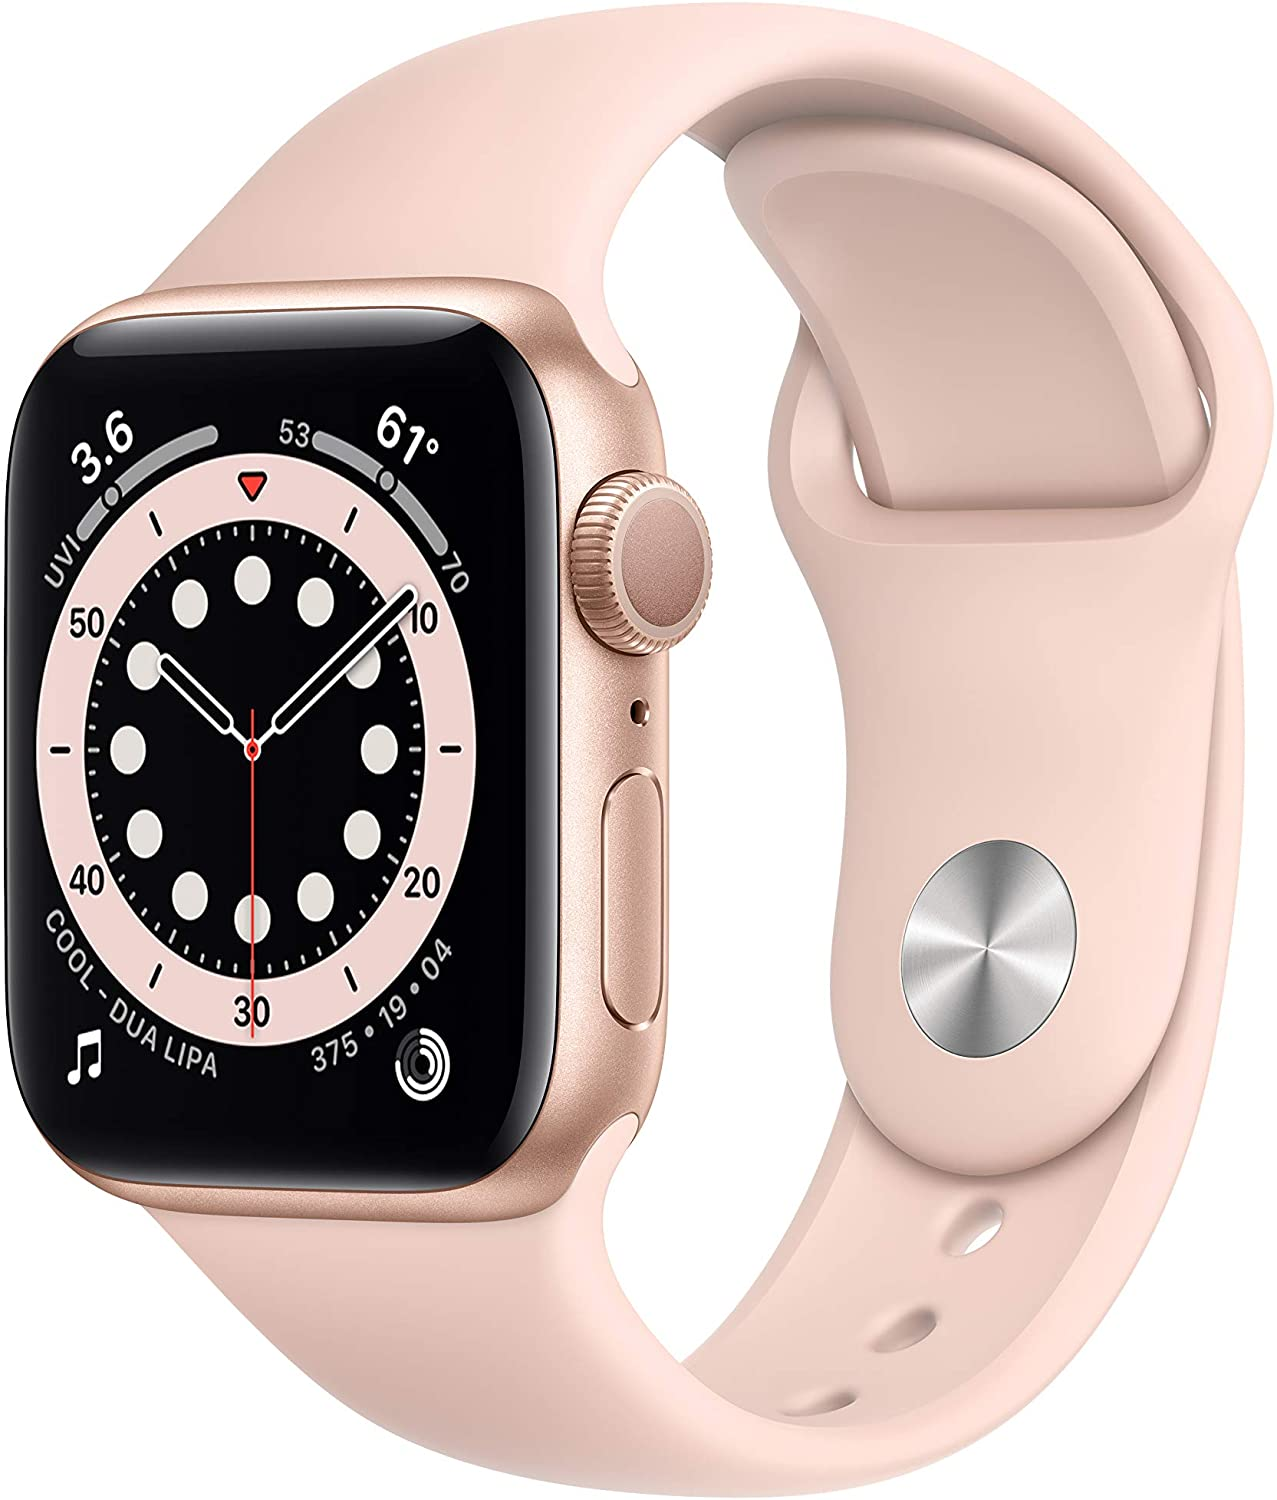 New Apple Watch Series 6 (GPS, 40mm) – Gold Aluminum Case with Pink Sand Sport Band